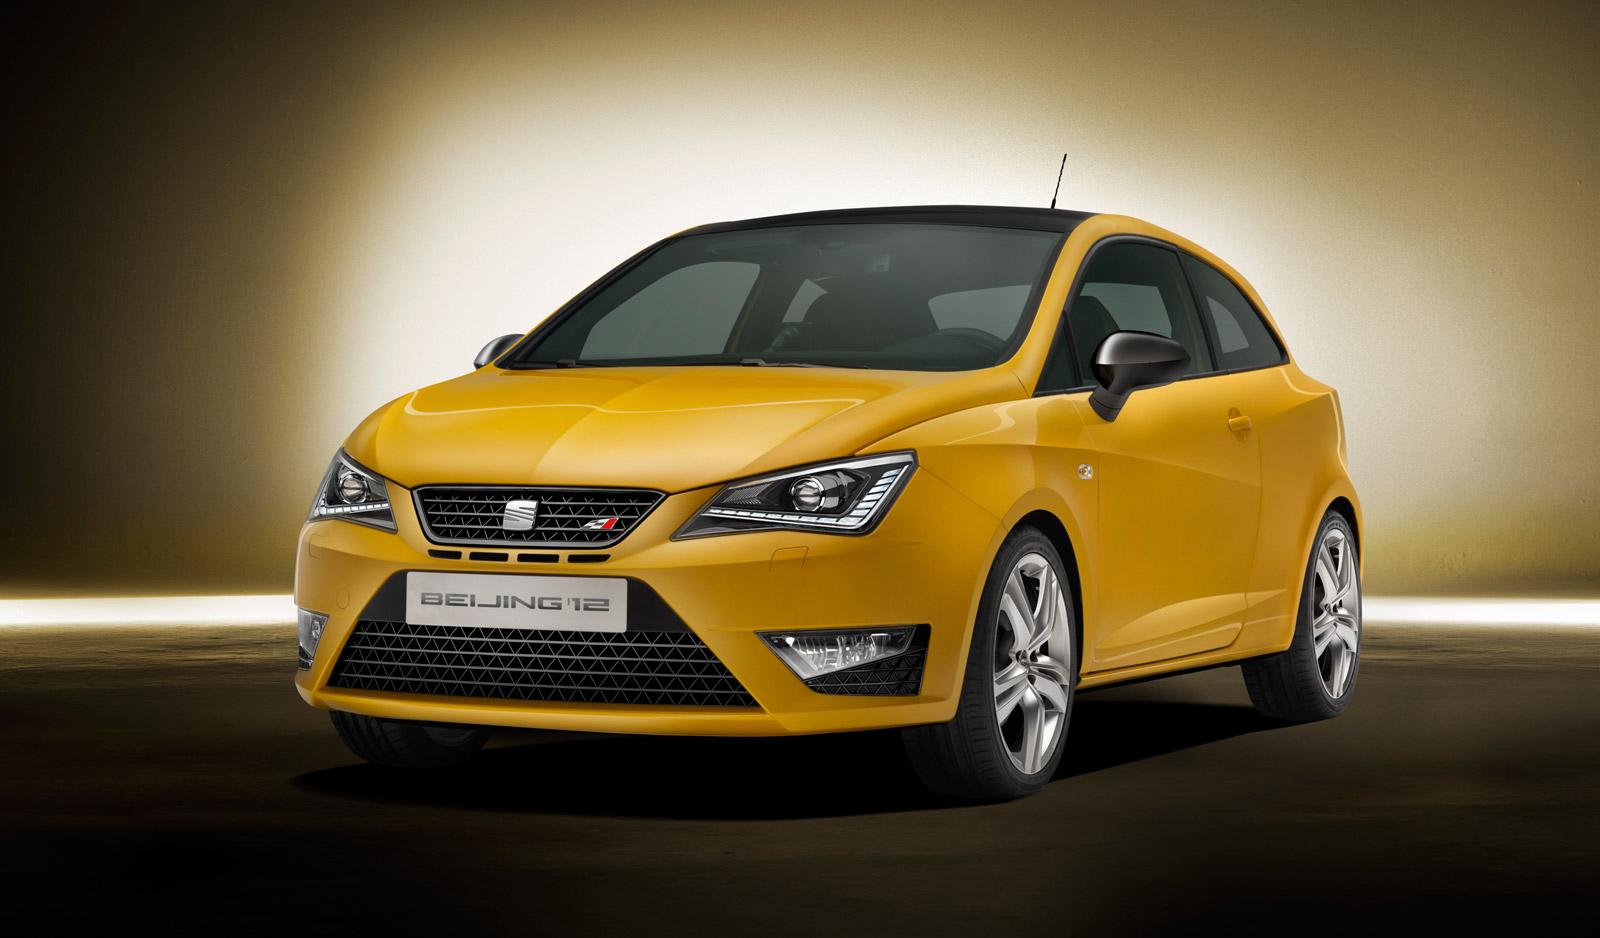 2012 seat ibiza cupra concept forbidden fruit. Black Bedroom Furniture Sets. Home Design Ideas